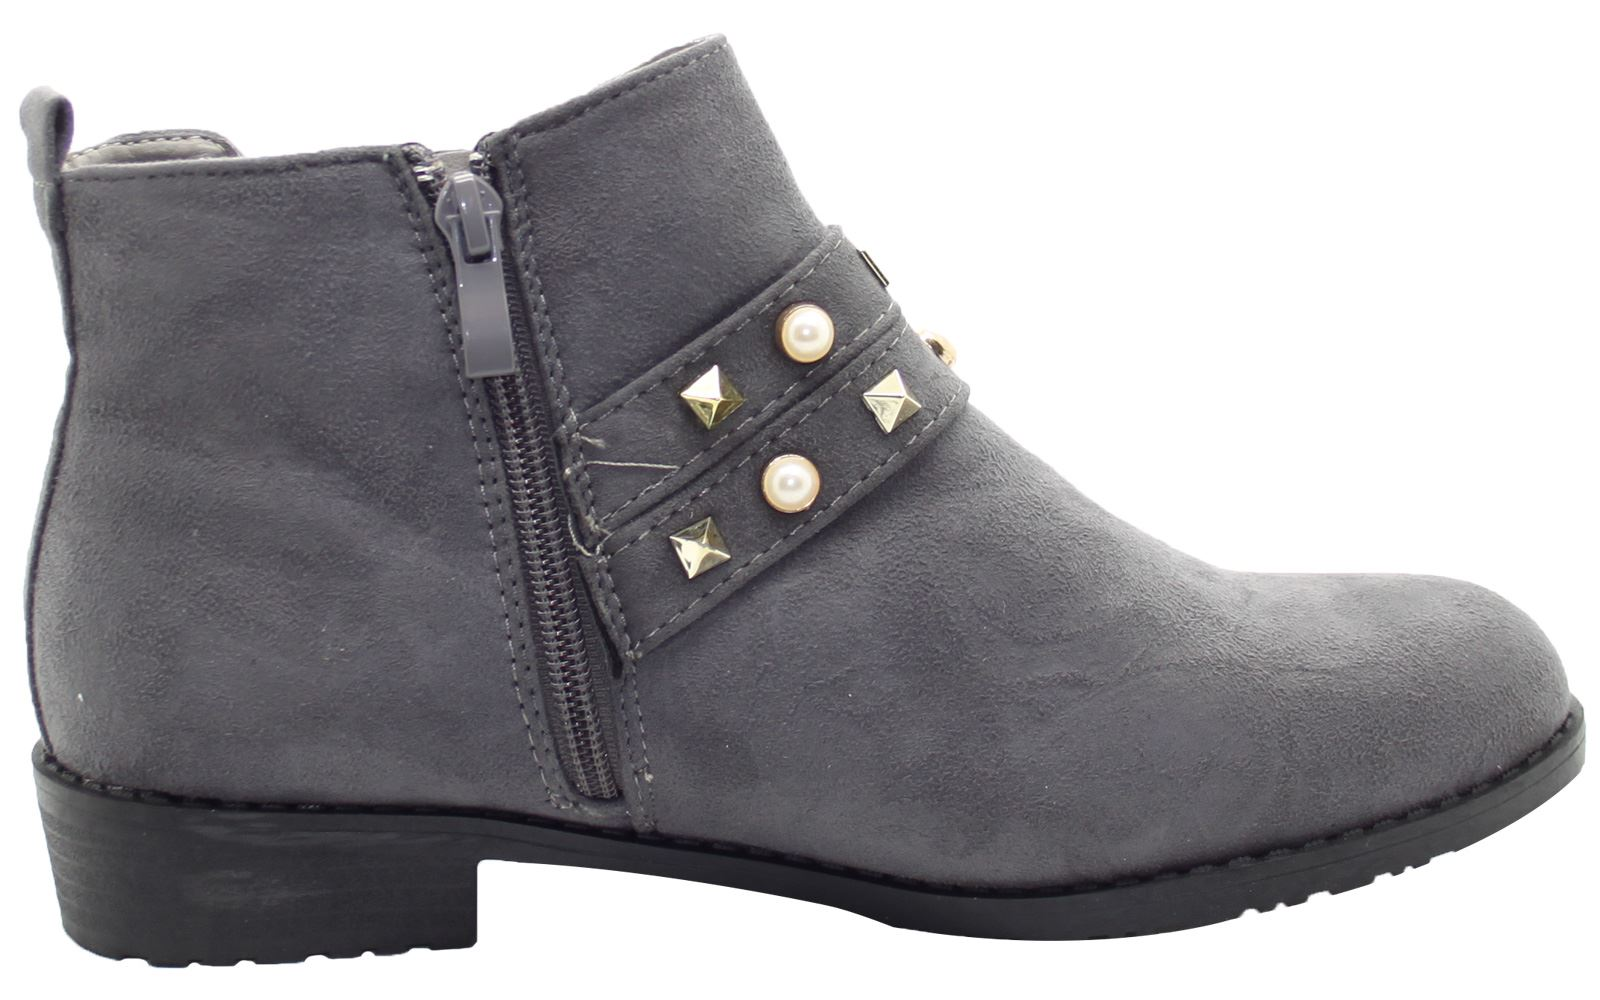 New-Women-Chelsea-Ankle-Boots-Winter-Block-Heel-Ladies-Biker-Style-Boots thumbnail 16